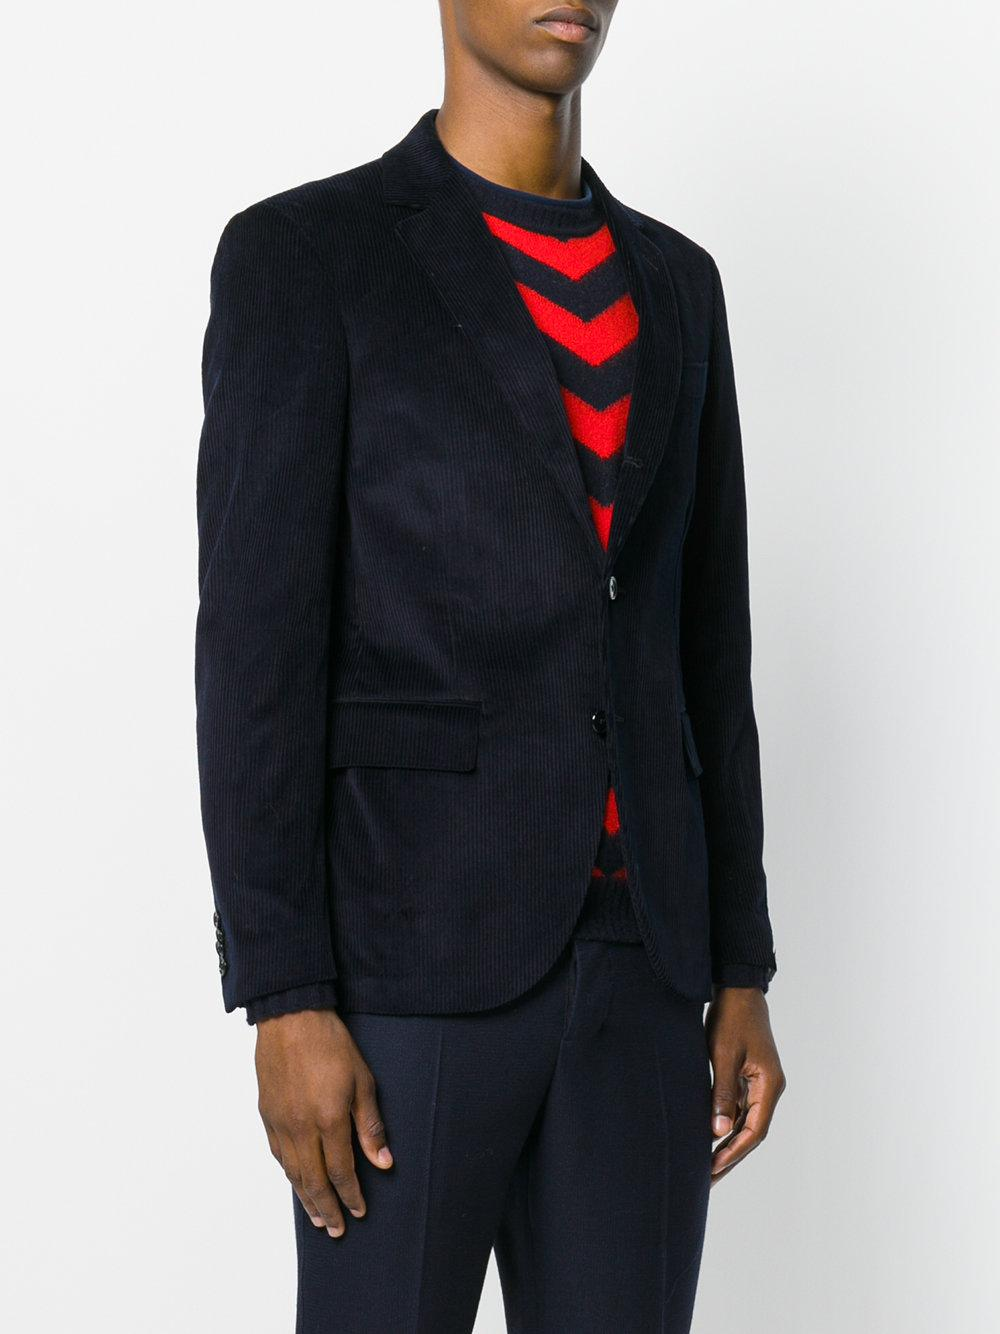 Mp Massimo Piombo Corduroy Mono Breasted Jacket in Blue for Men